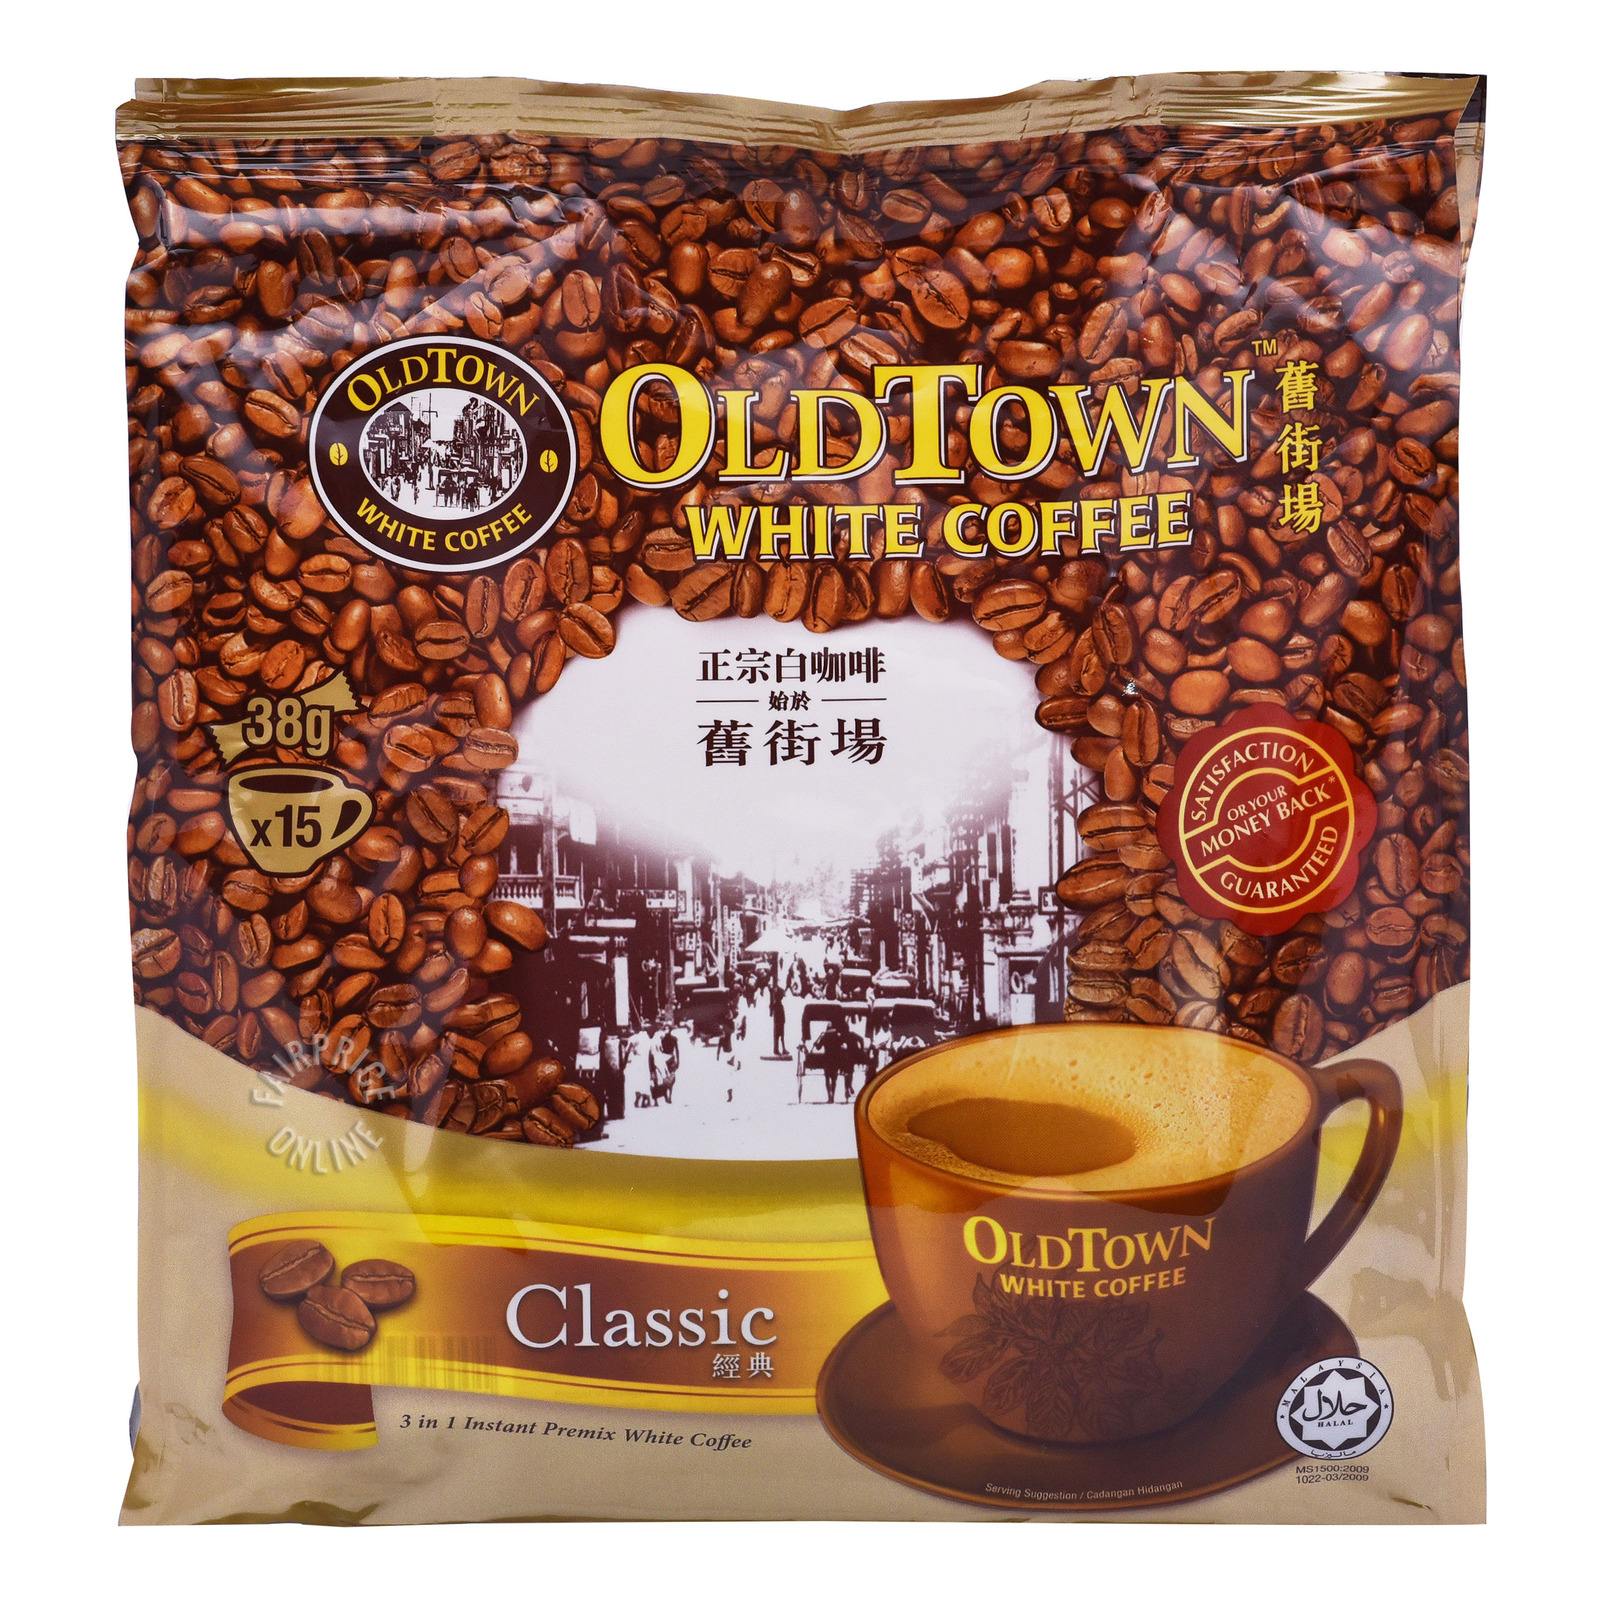 Old Town 3 in 1 Instant White Coffee - Classic